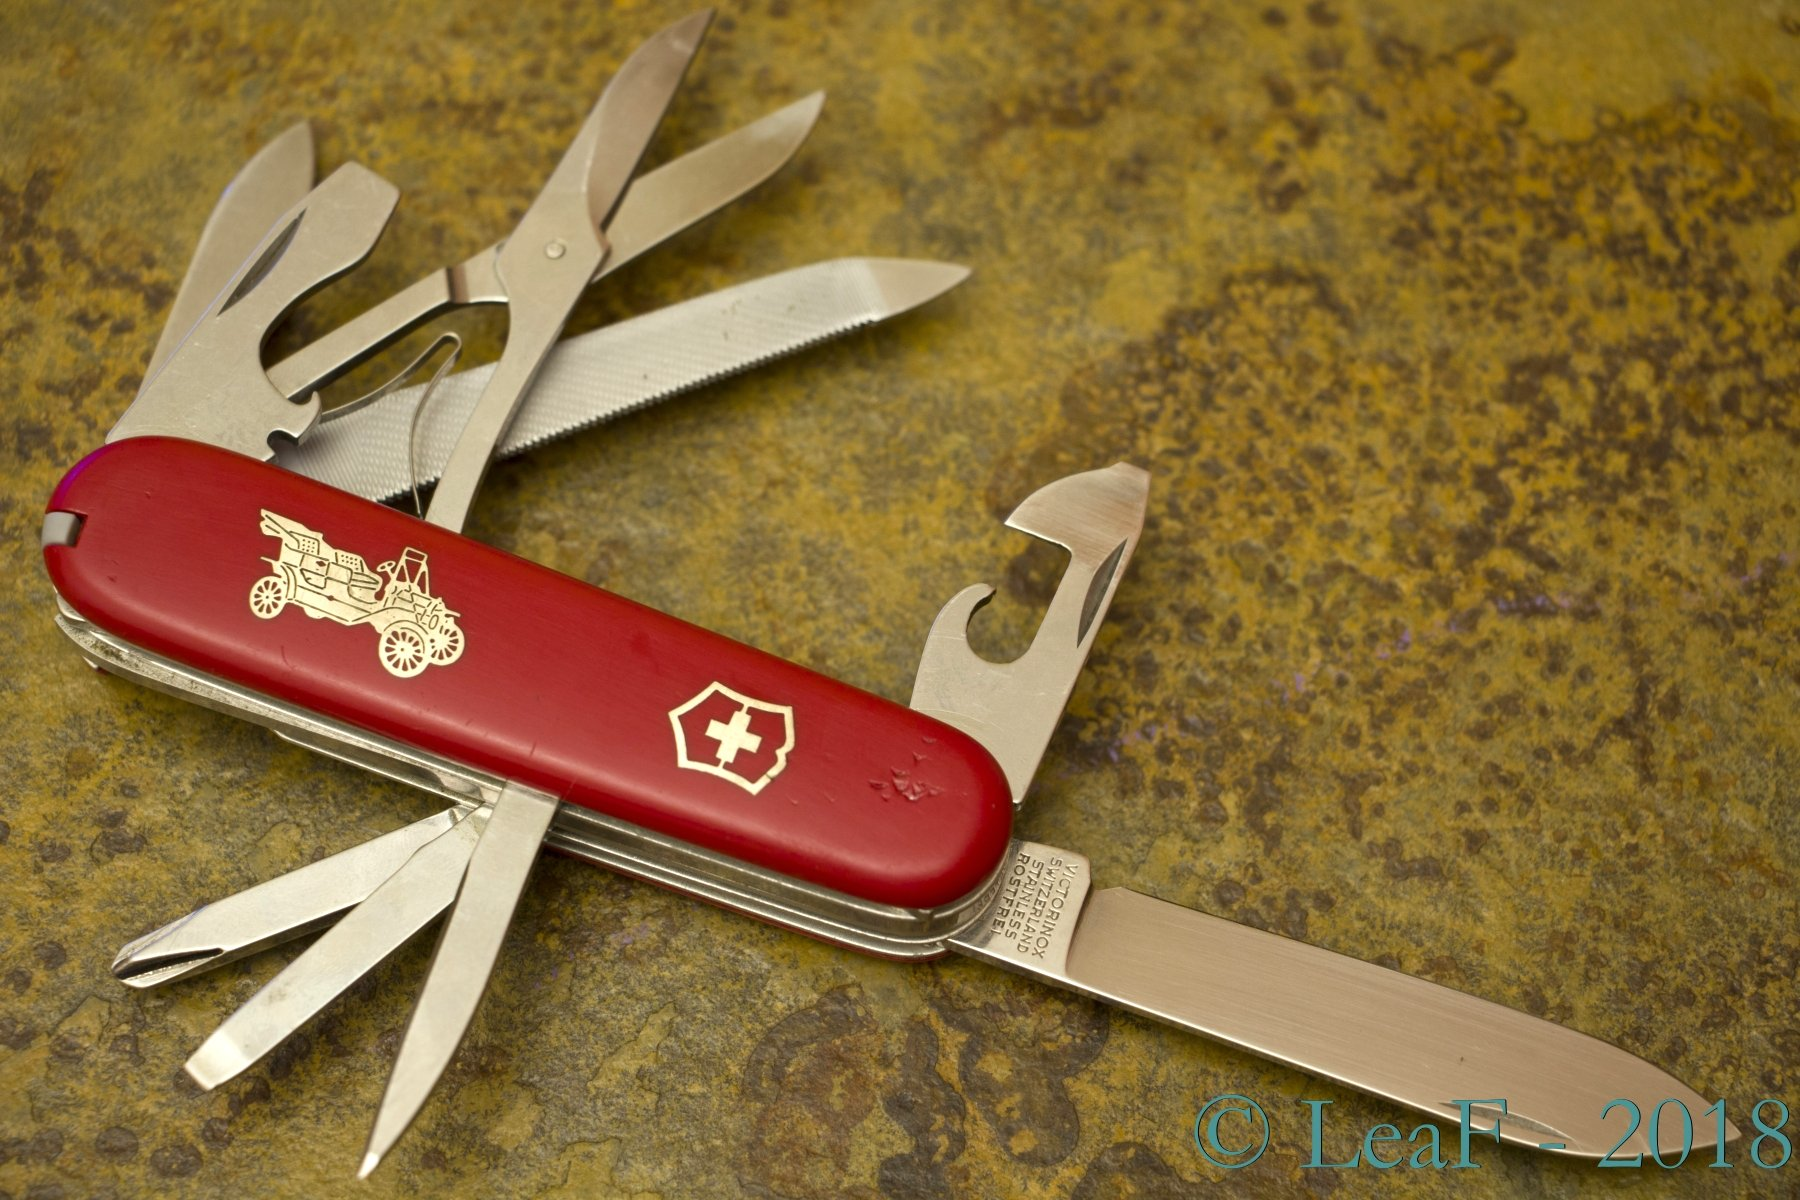 079  Grand Prix  U2013 Leaf U0026 39 S Victorinox Knives Collection